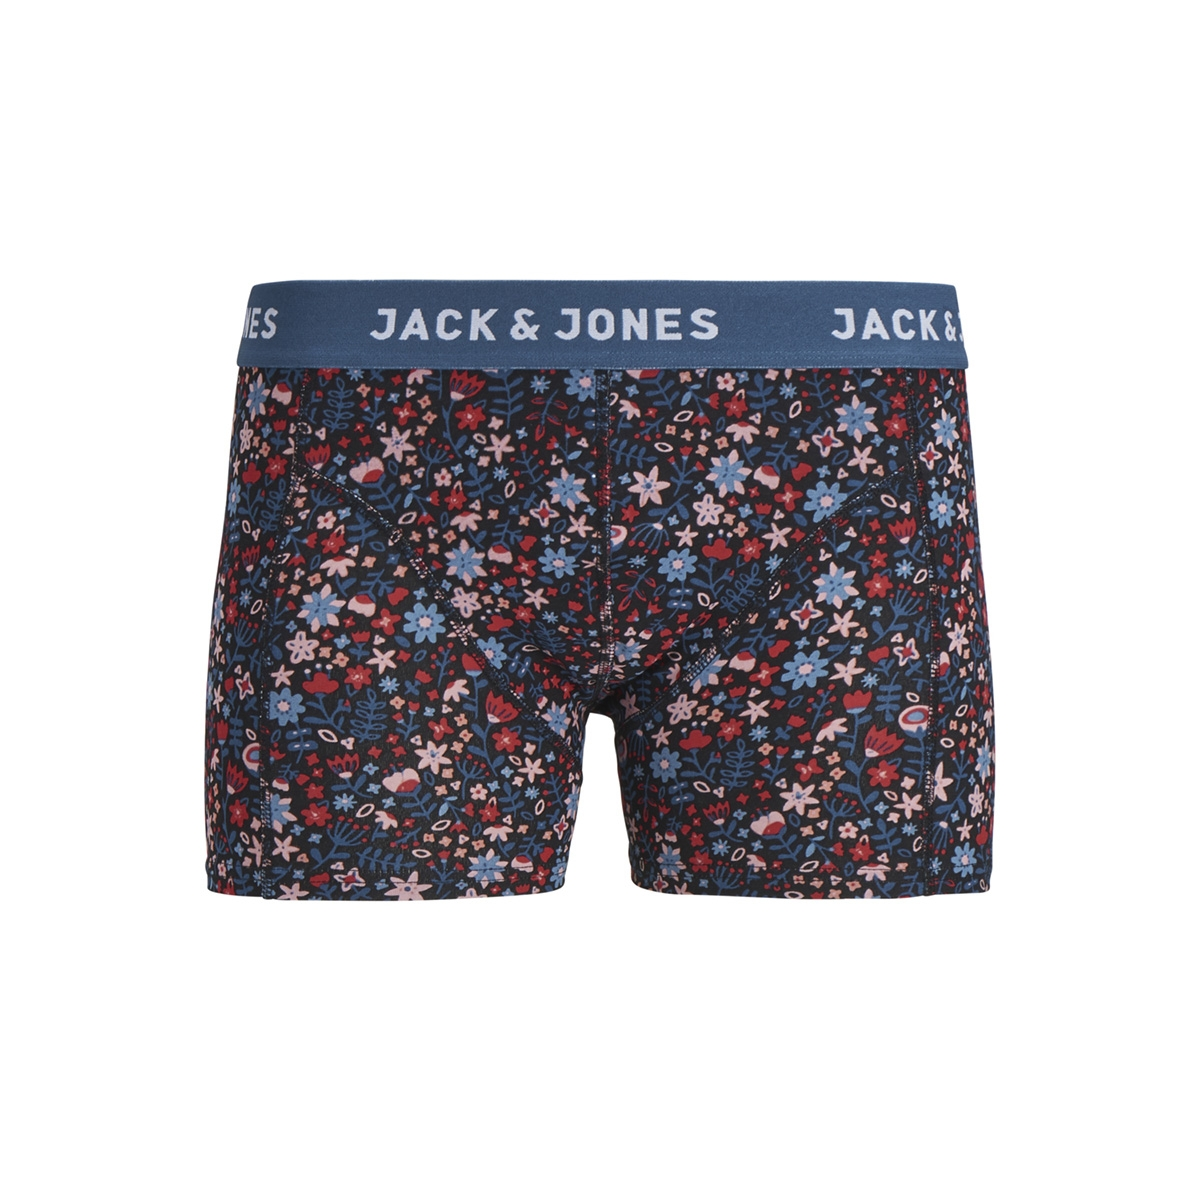 jacbutterfly trunks noos 12149828 jack & jones ondergoed black